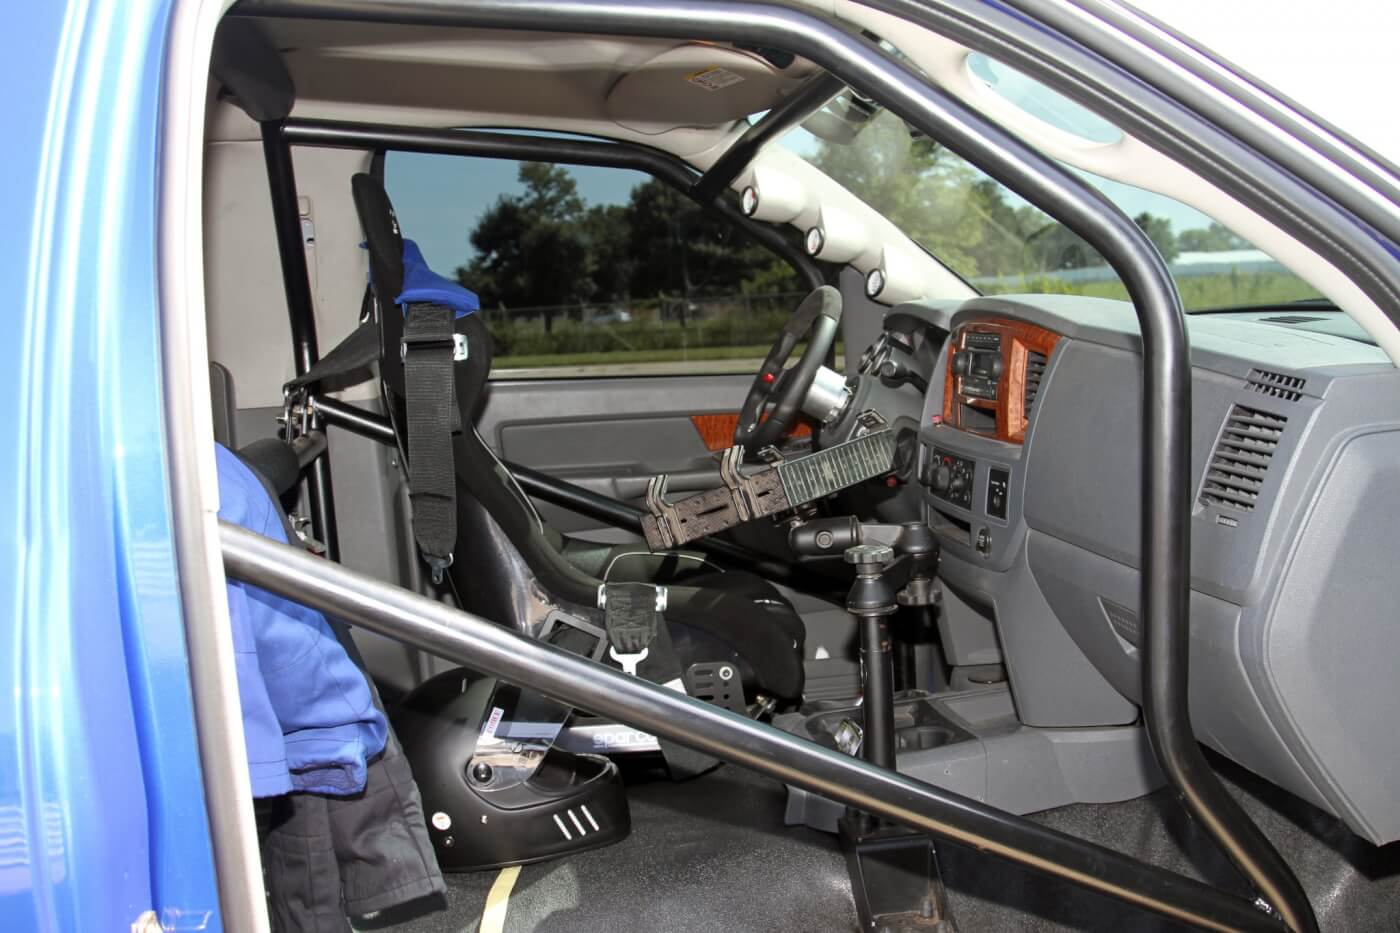 With a vinyl floor, roll cage and a single racing seat you can easily tell that Rose's truck is ready to rumble. The Ram Mount holds his laptop while data logging during runs or while tuning the truck.